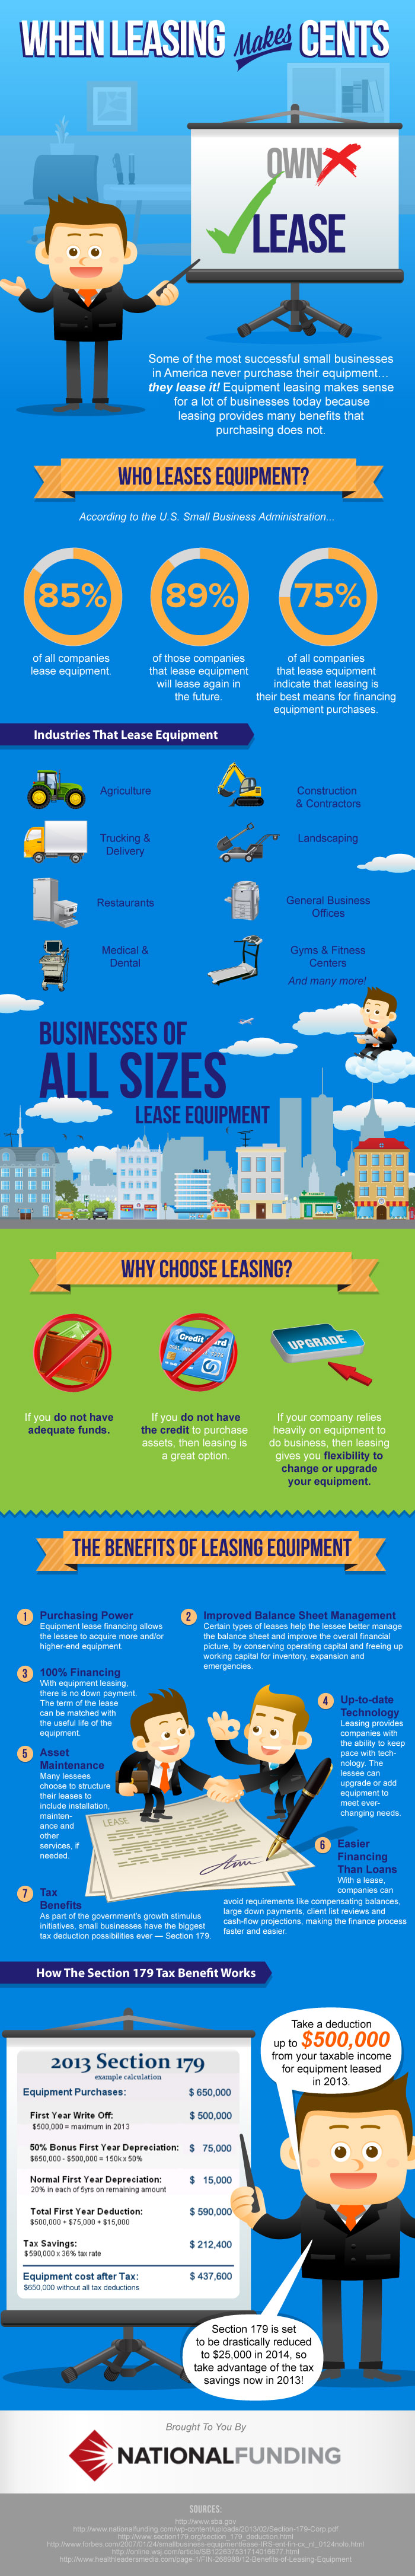 When-Leasing-Makes-Sense-infographic